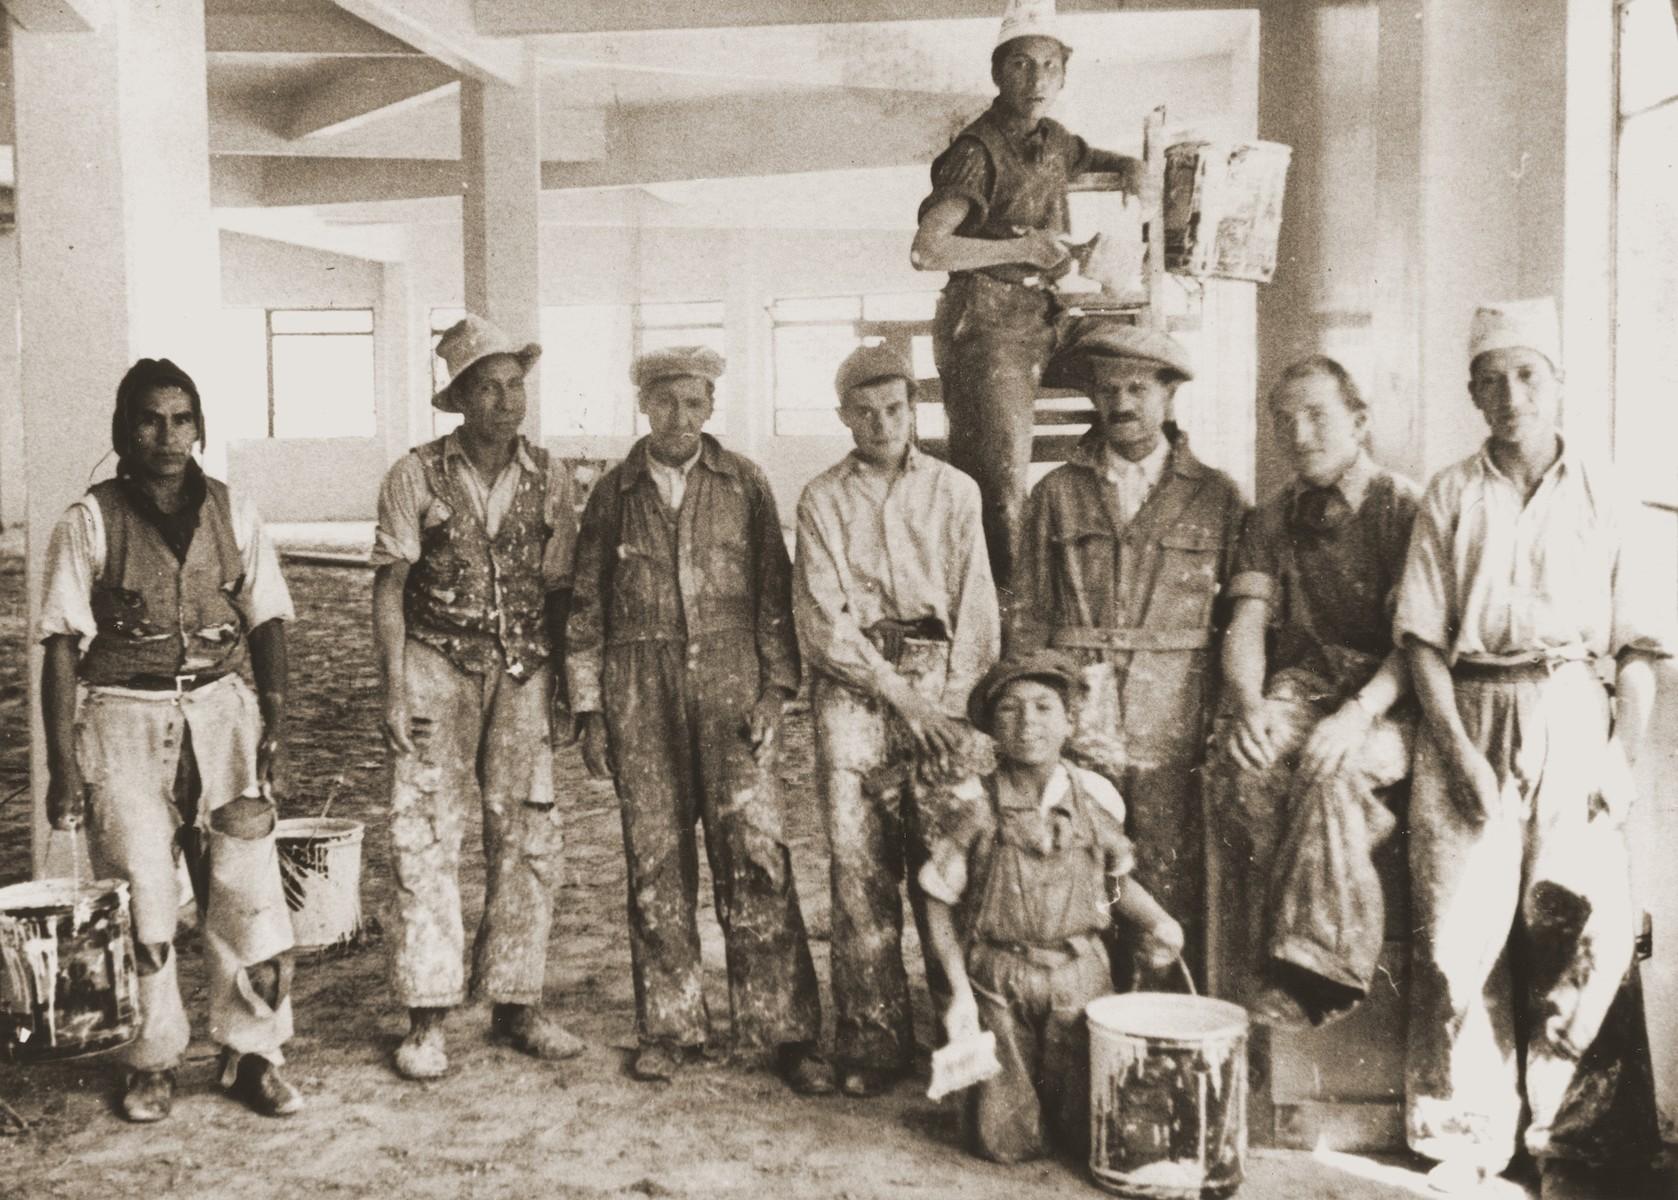 Austrian Jewish refugees pose with Bolivian workers at a construction site in La Paz.  Among those pictured are Nathan Wolfinger (third from the right) and Julius Wolfinger (fourth from the right).